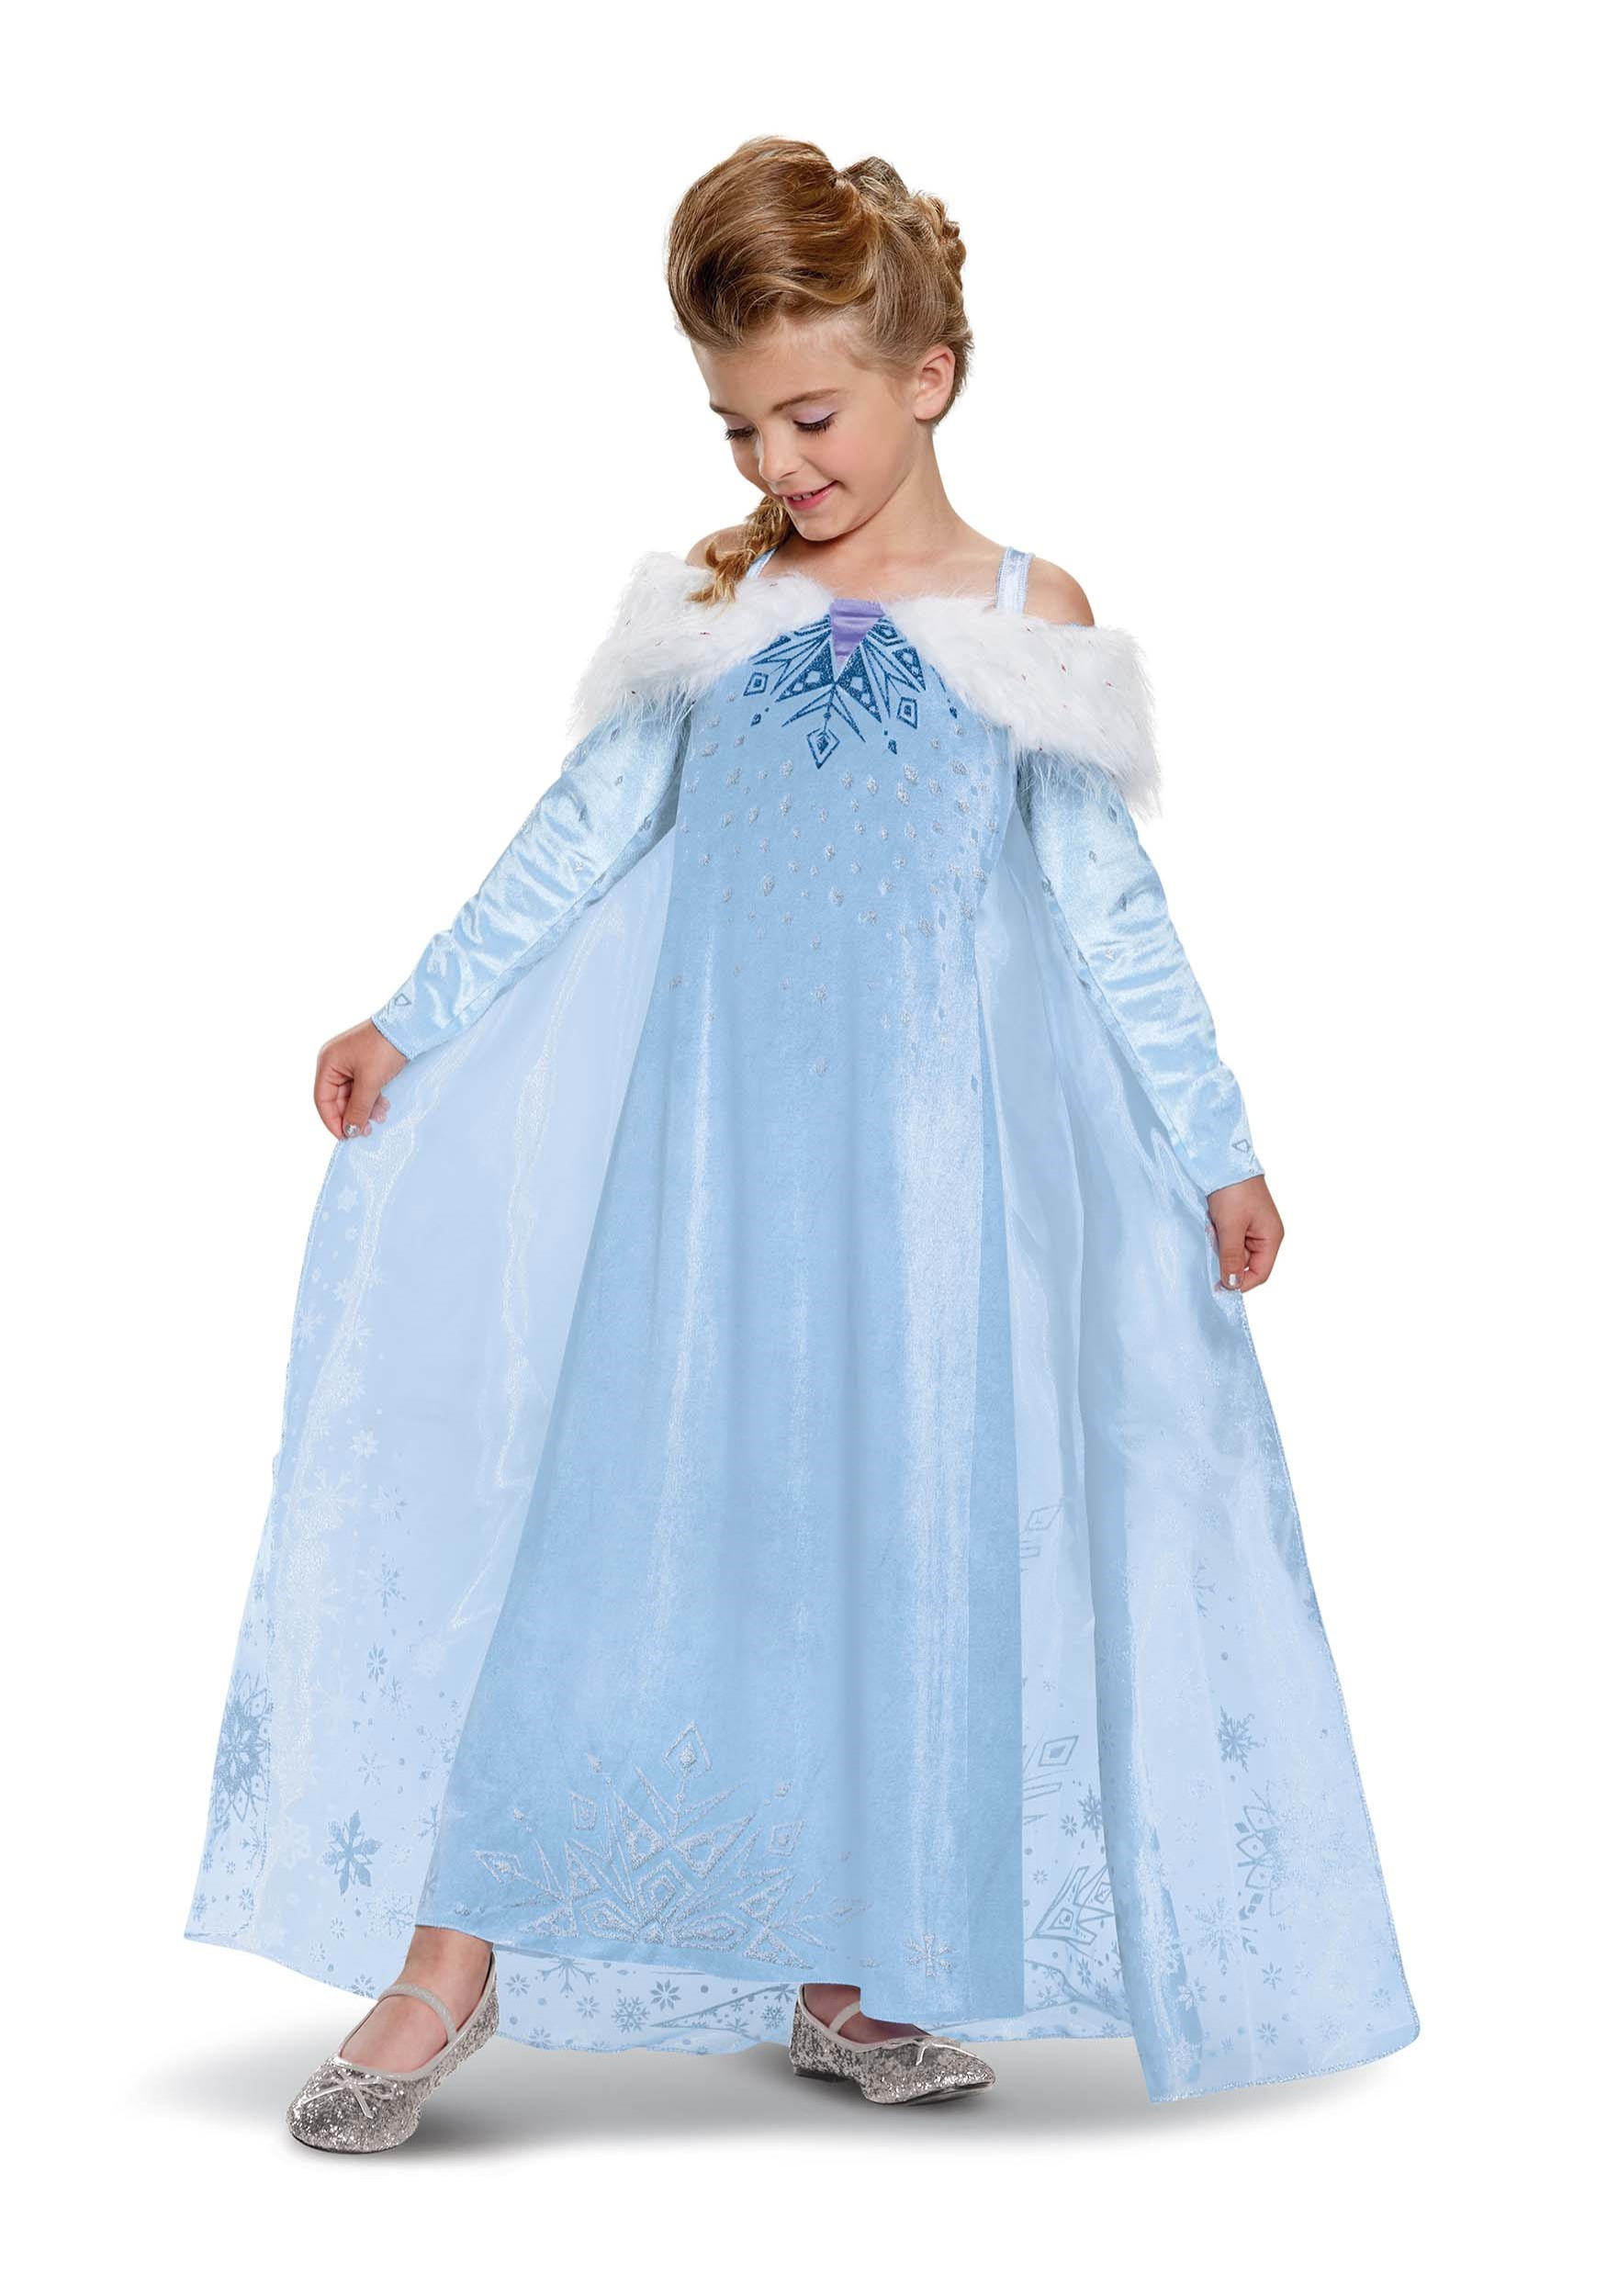 Frozen Elsa Adventure Dress Deluxe Girls Costume